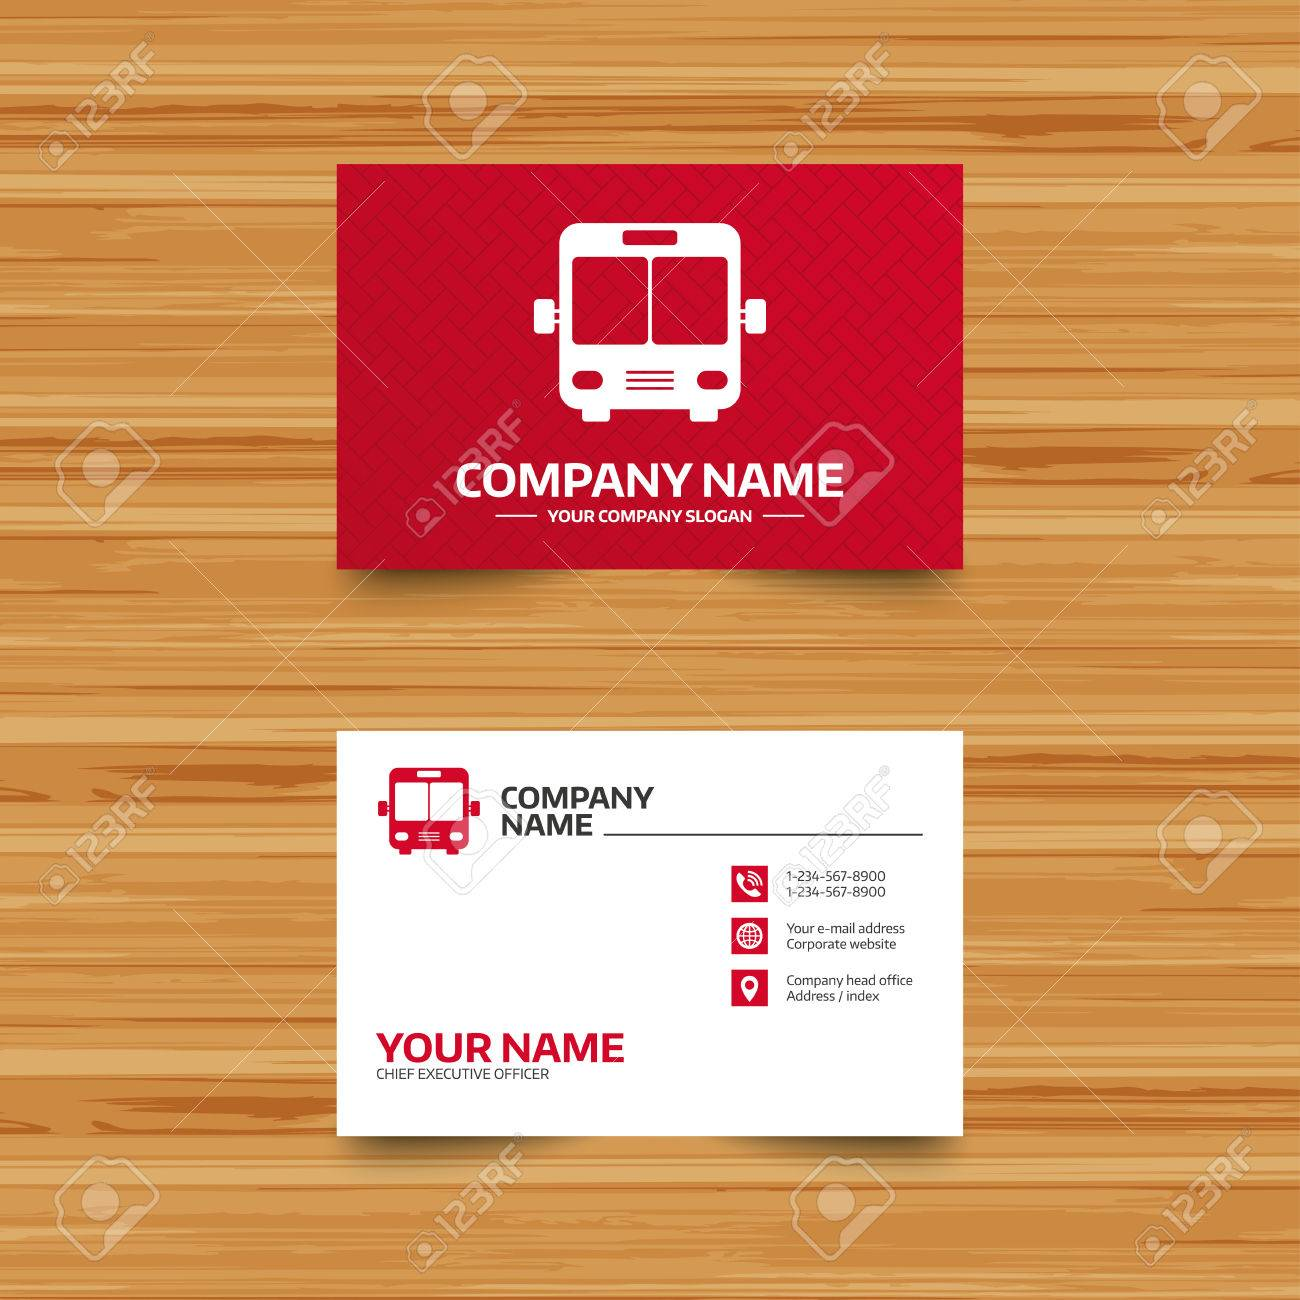 Phone Icon For Business Cards Image collections - Free Business Cards